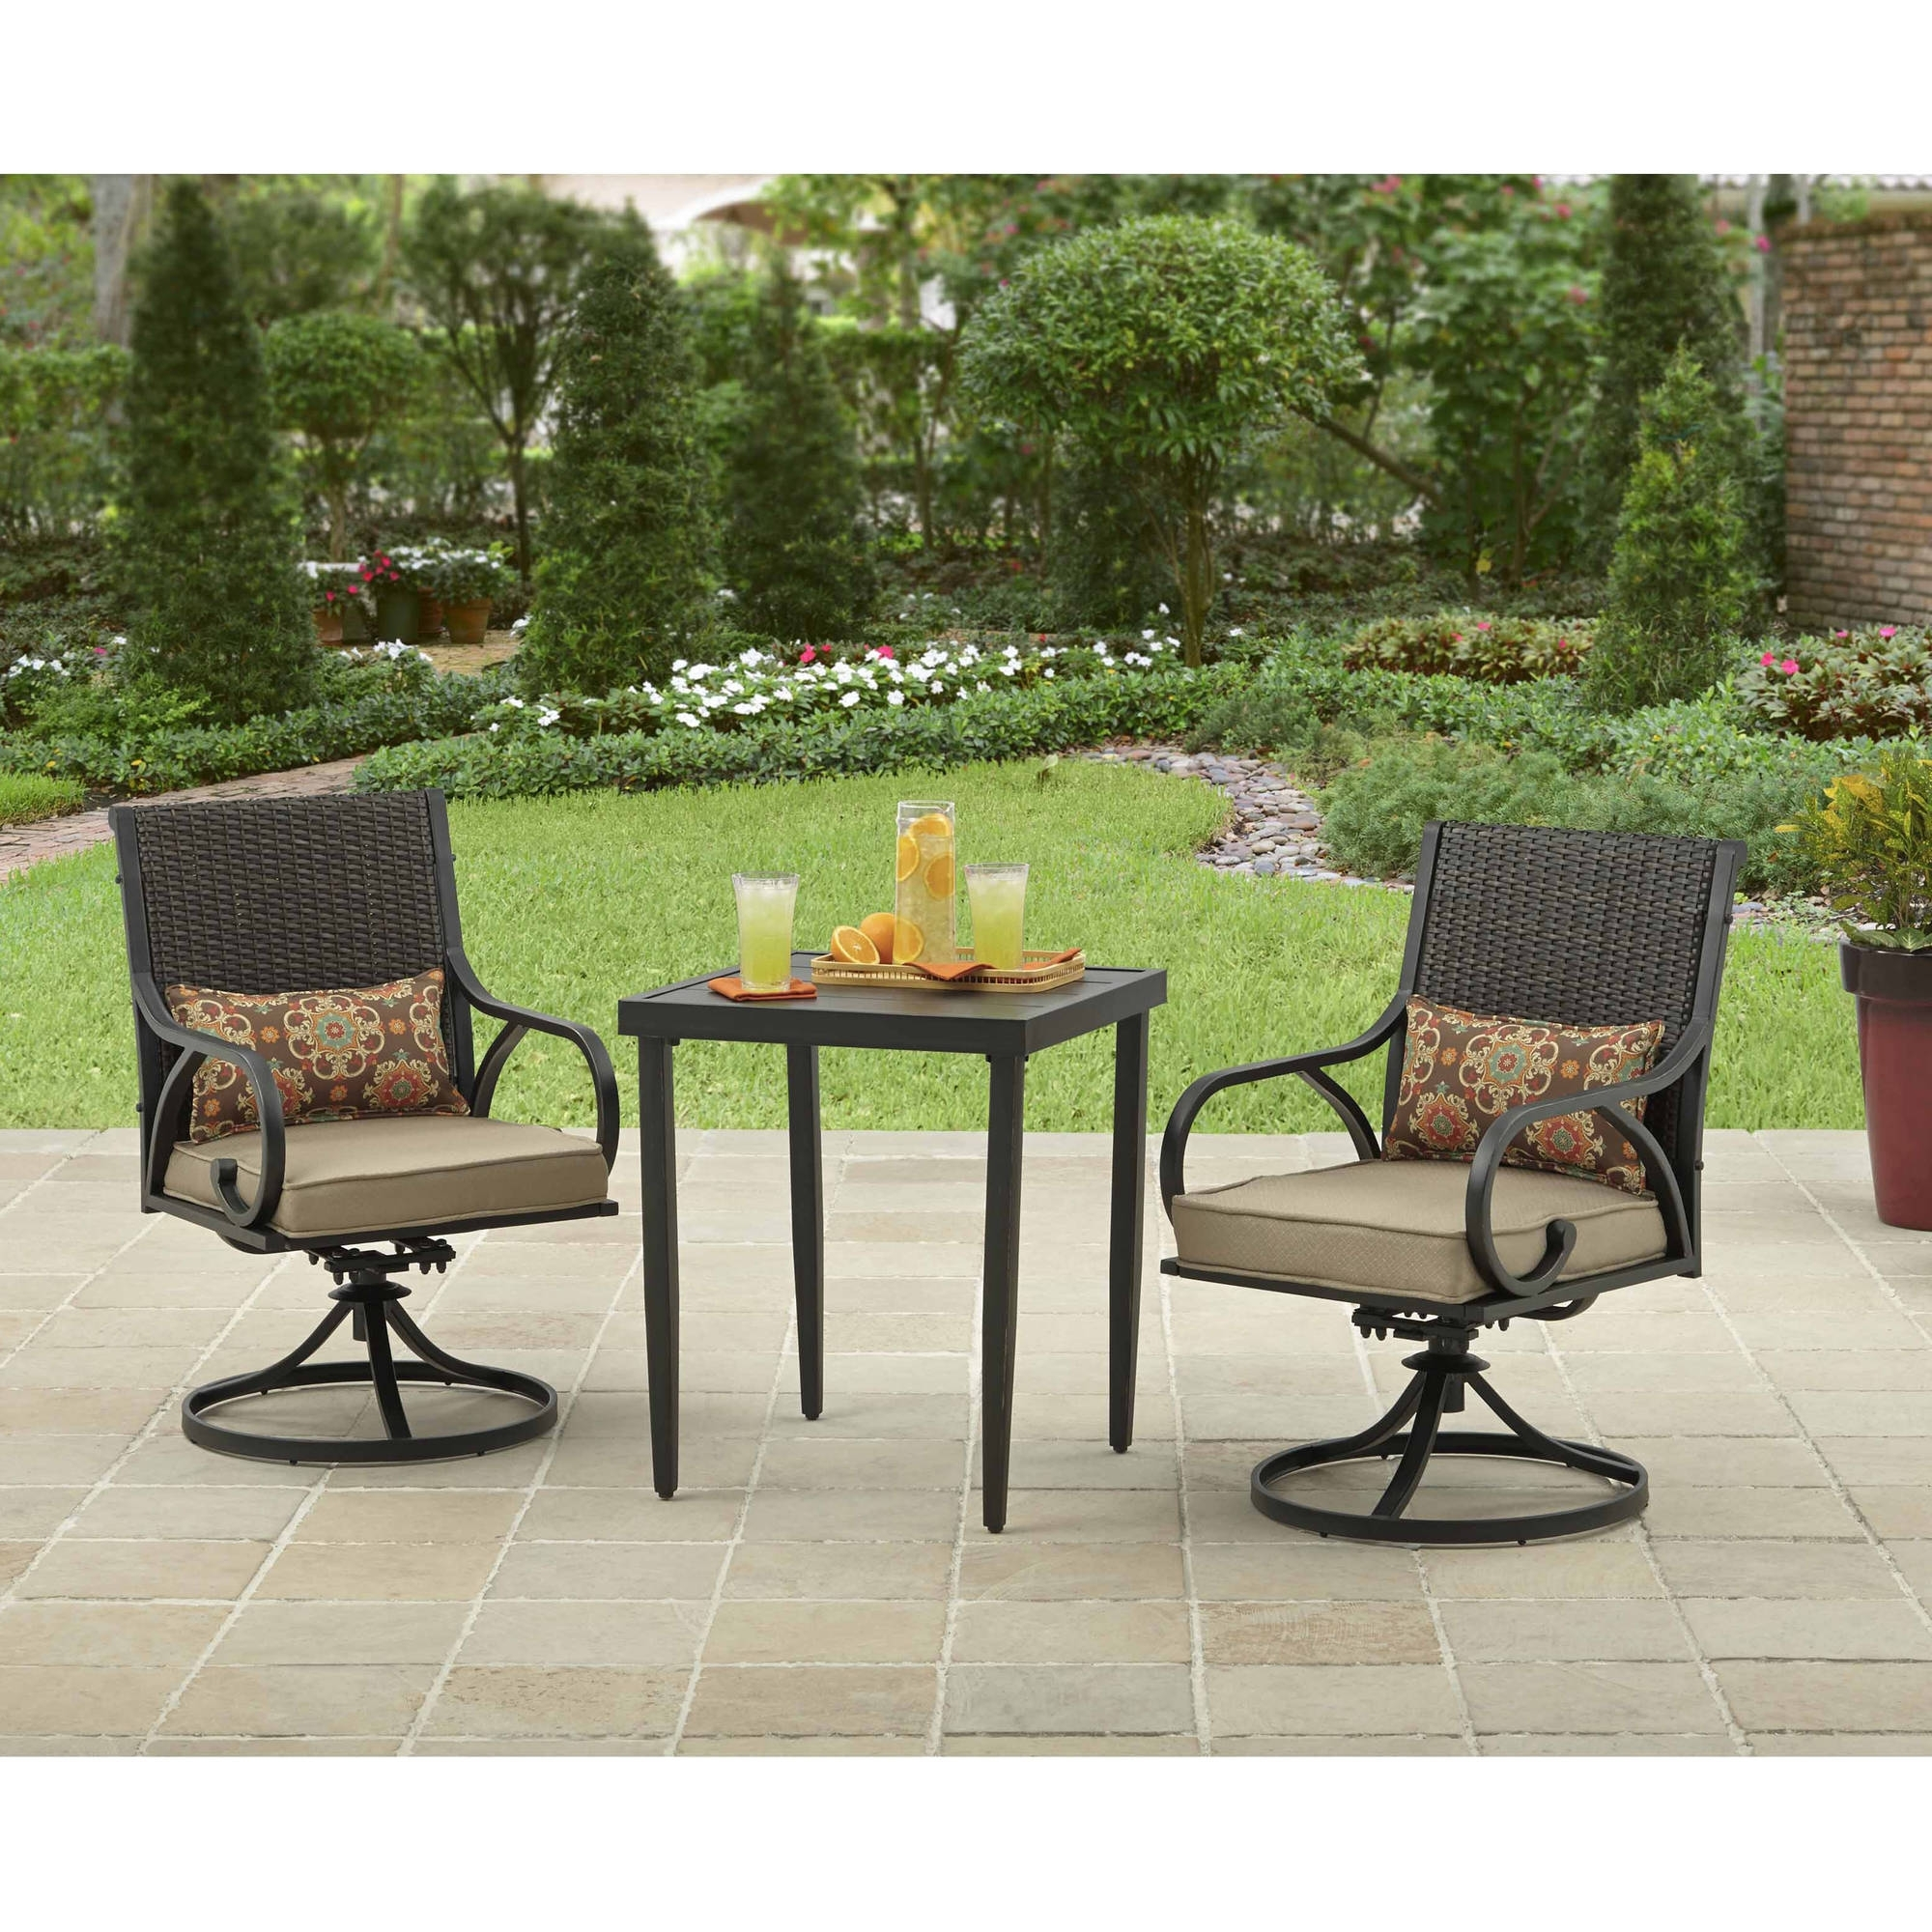 Outdoor Bistro Set 3 Piece Table & Chairs Swivel & Rocker Wicker With Regard To Current Patio Rocking Chairs And Table (View 10 of 15)